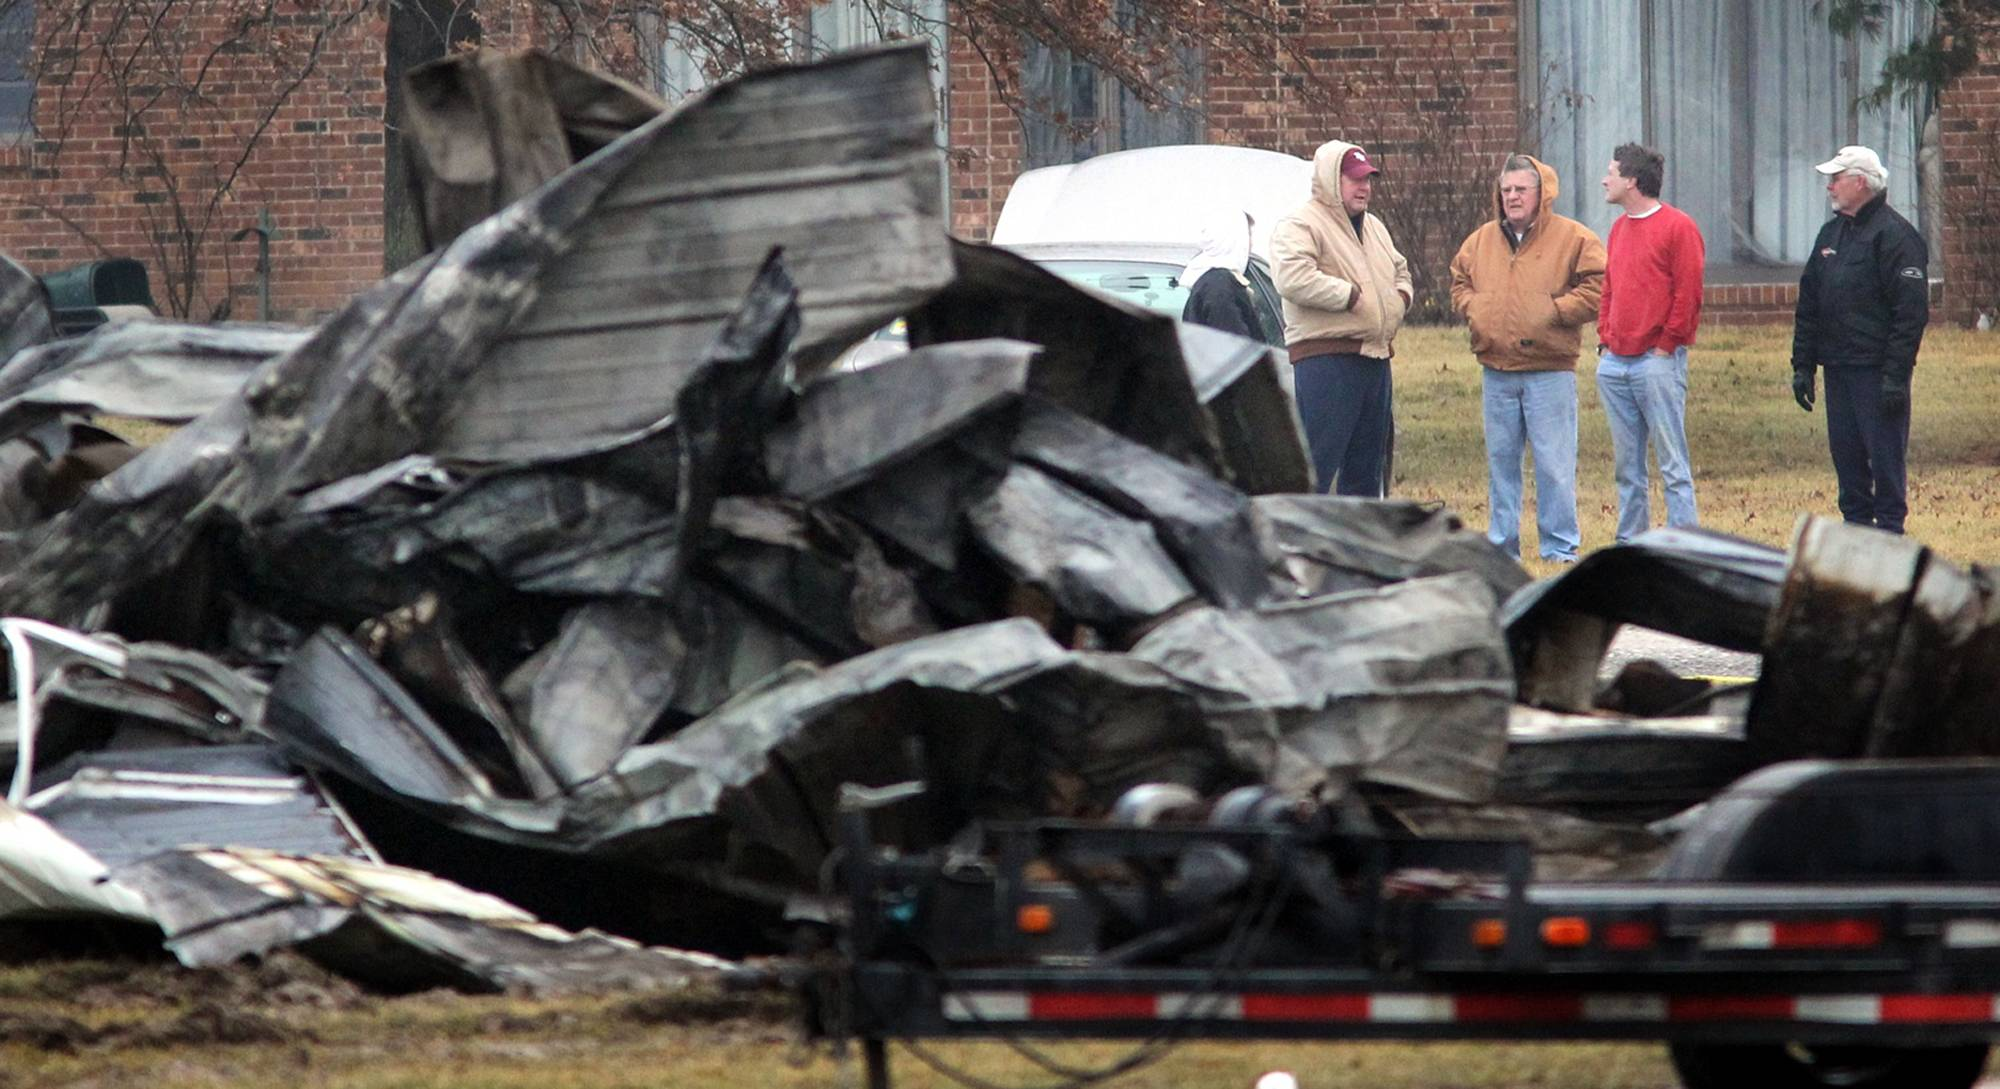 Federal investigators say pilot error was to blame for the fatal crash that killed two people the night of Feb. 21, 2010.